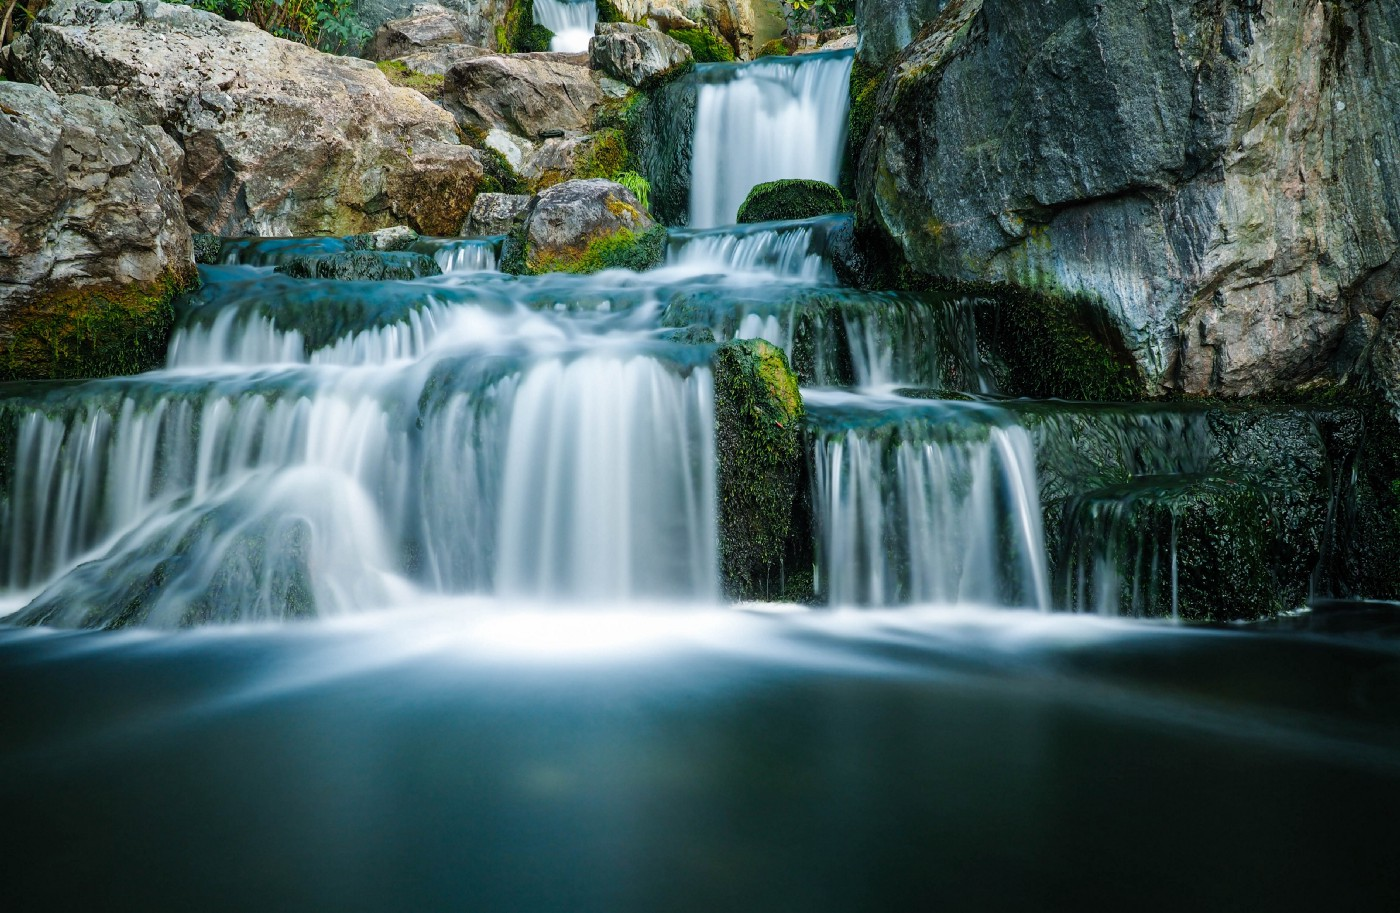 Water flows down a  large, multi-tiered waterfall.